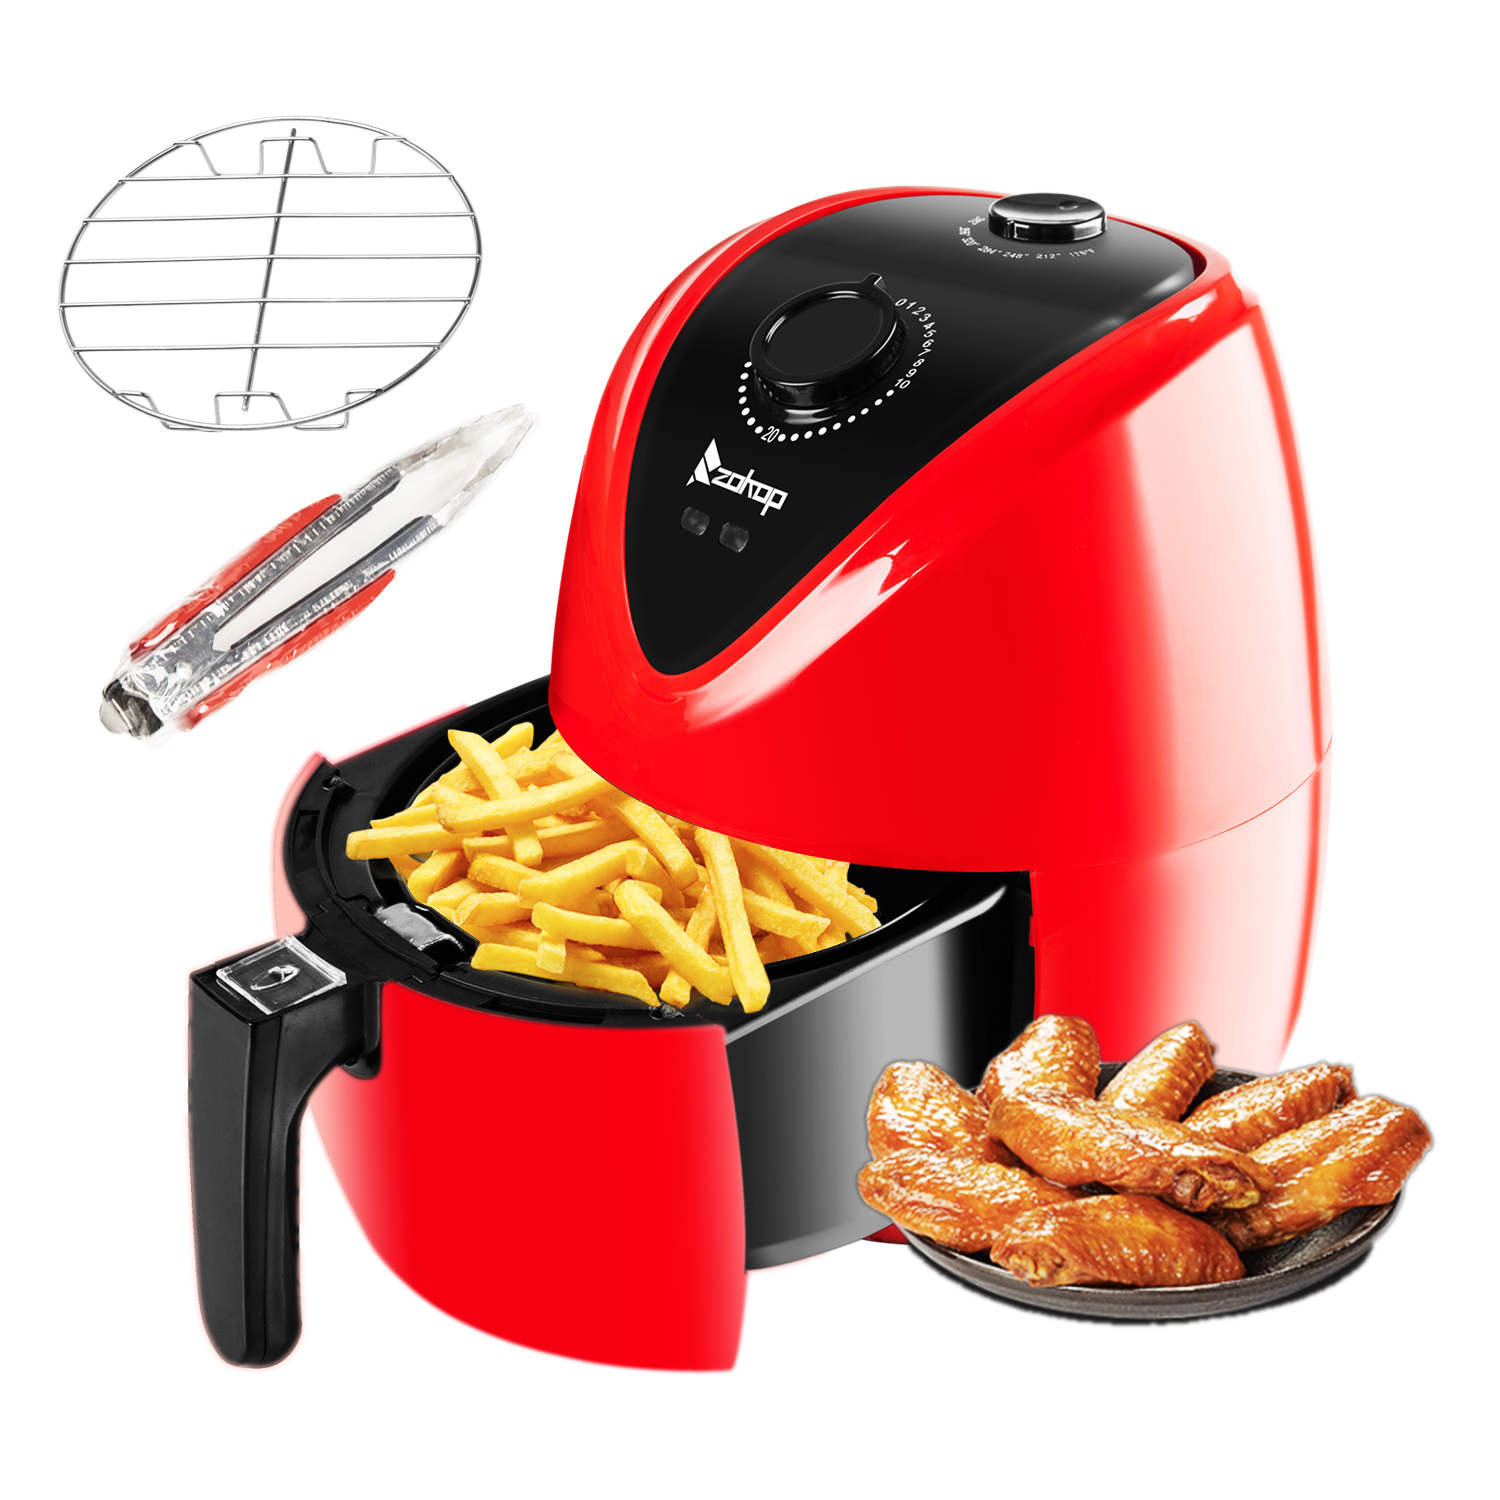 Zimtown Air Fryer 1500W Air Fryer Oil Free Low fat Timer & Temperature Control Red Electric-ETL Listed